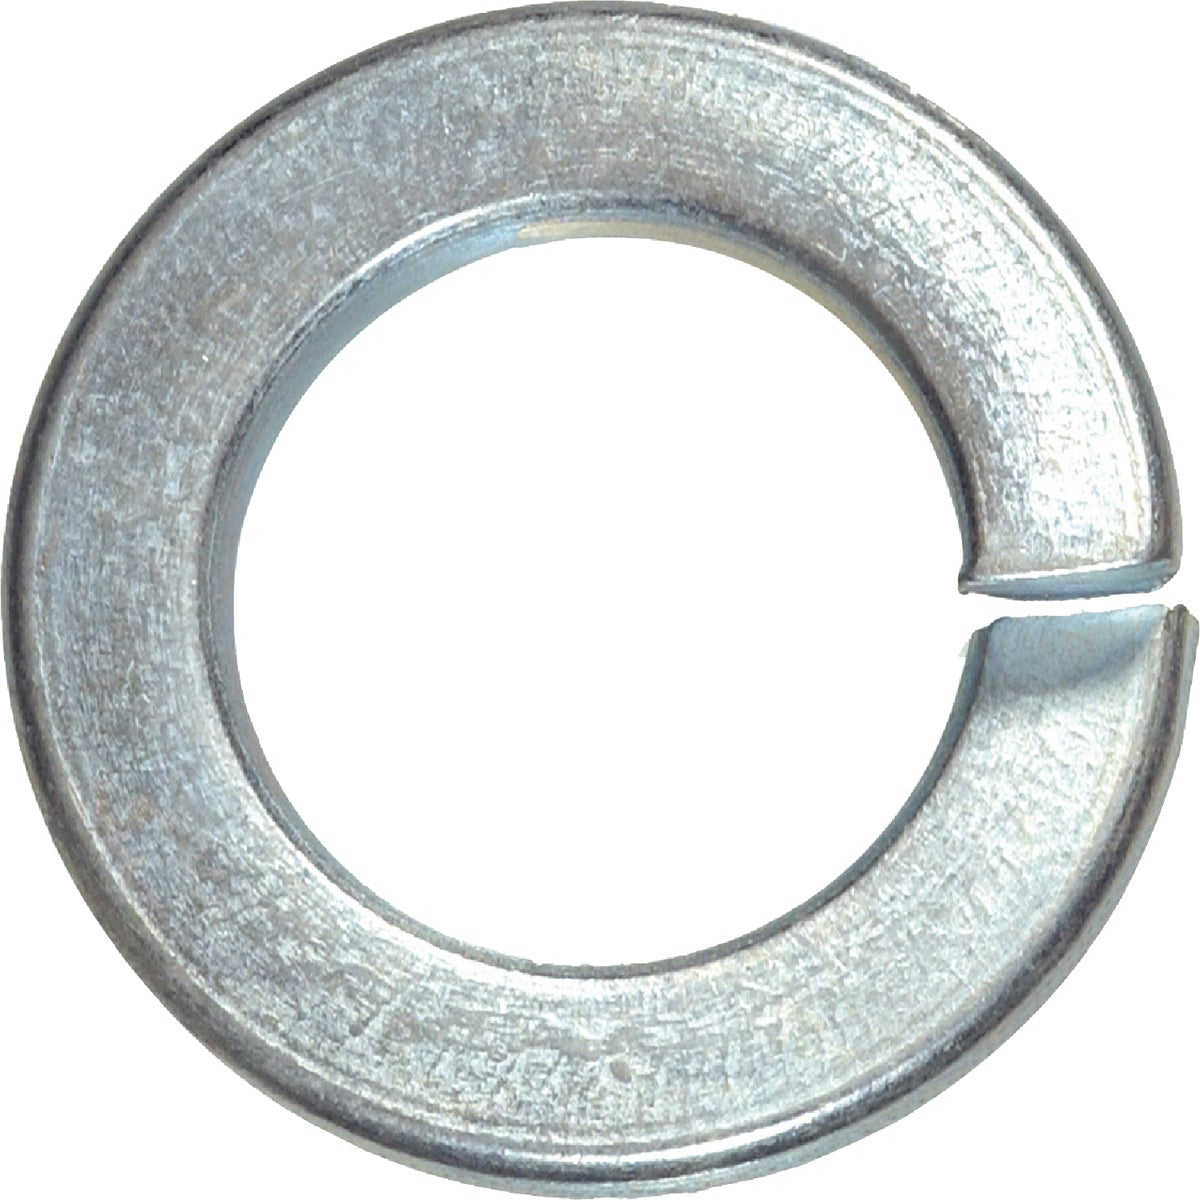 "100PC 1/4"" LOCK WASHER - 300018 by Hillman Fastener"